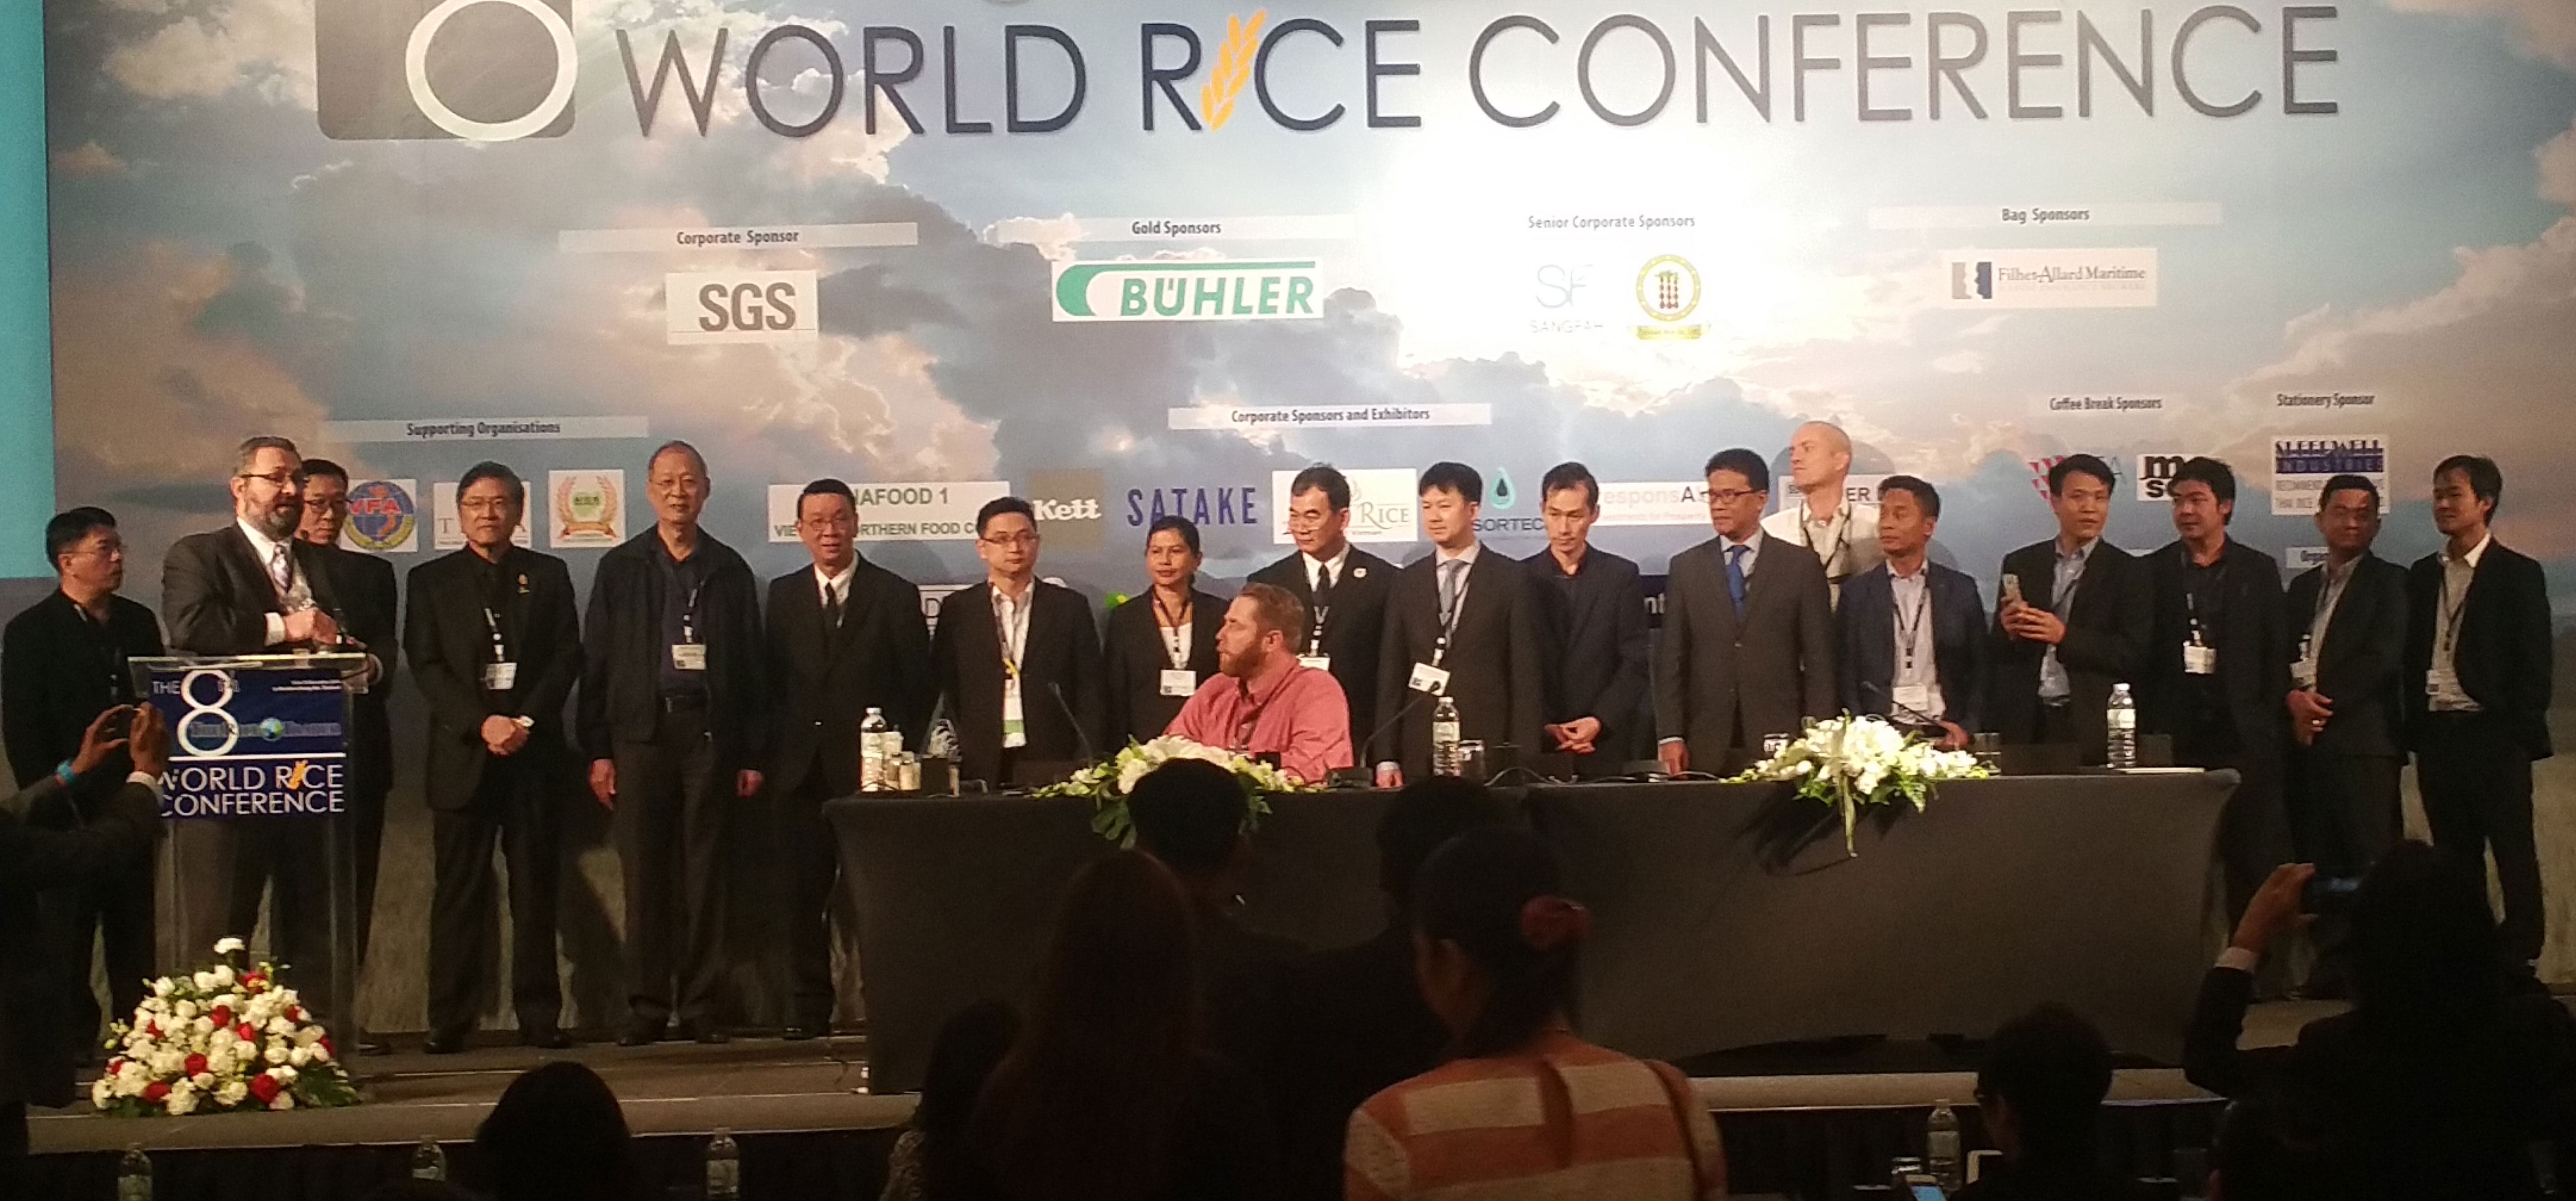 TRT-World-Rice-Conference-in-Thailand